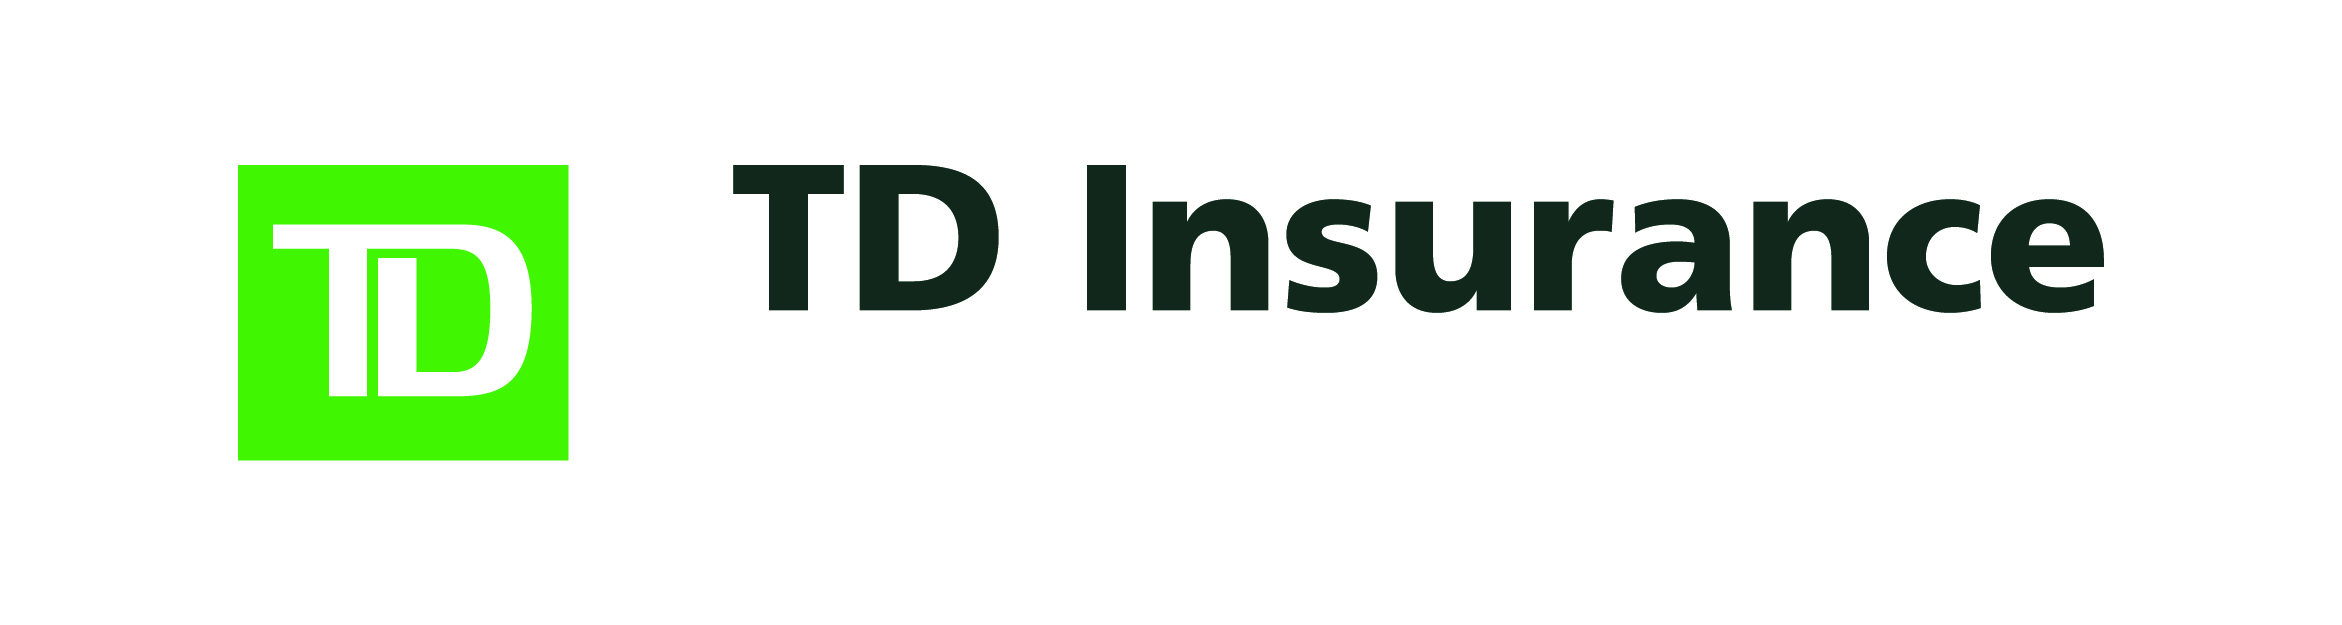 Vancouver Alumni Benefit for TD Insurance